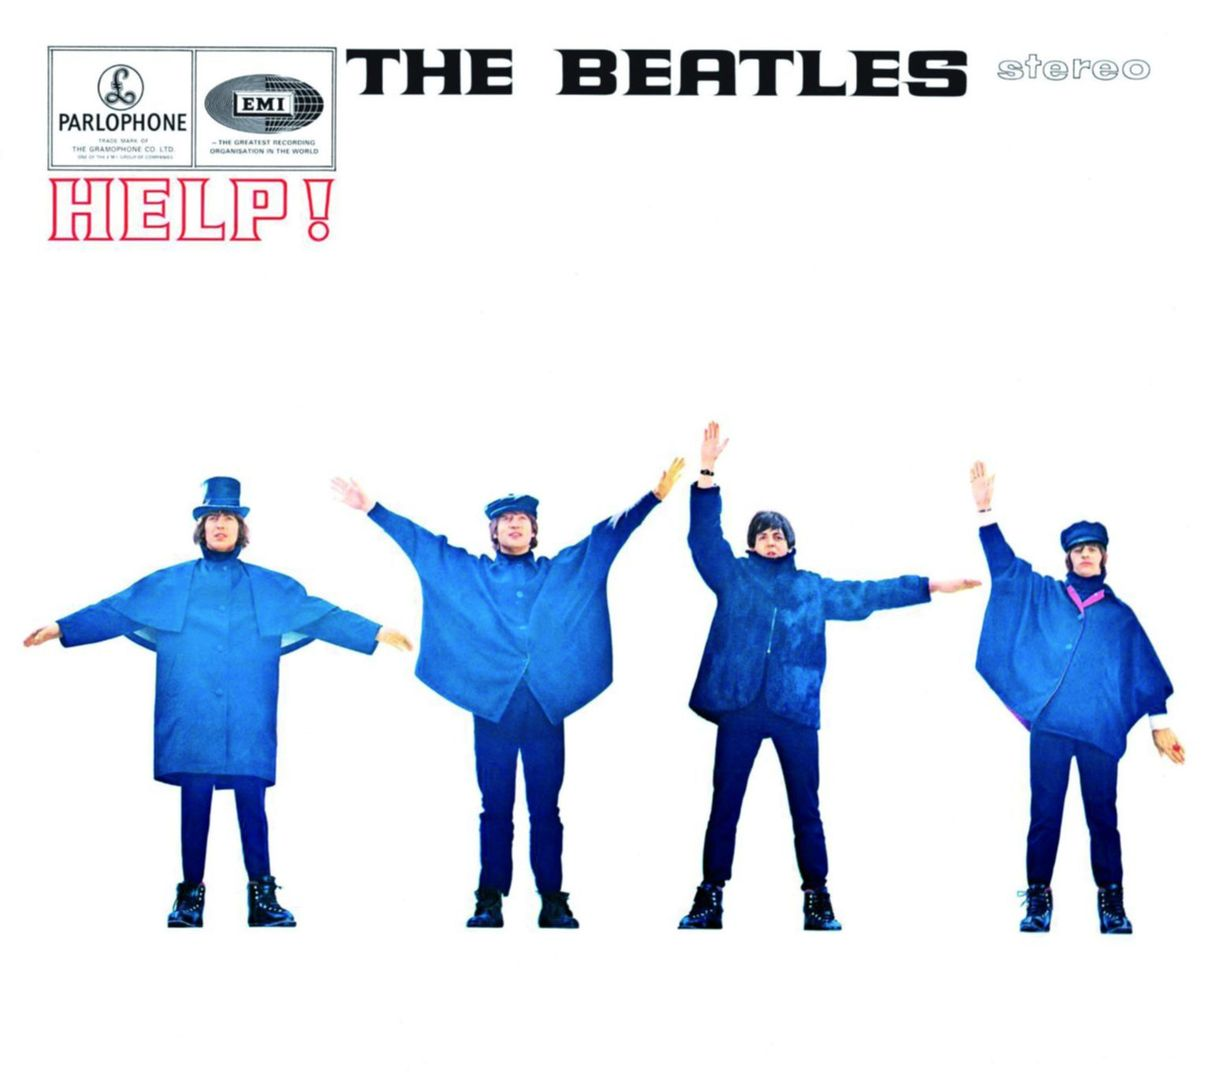 The Beatles: Help! (GB 965)